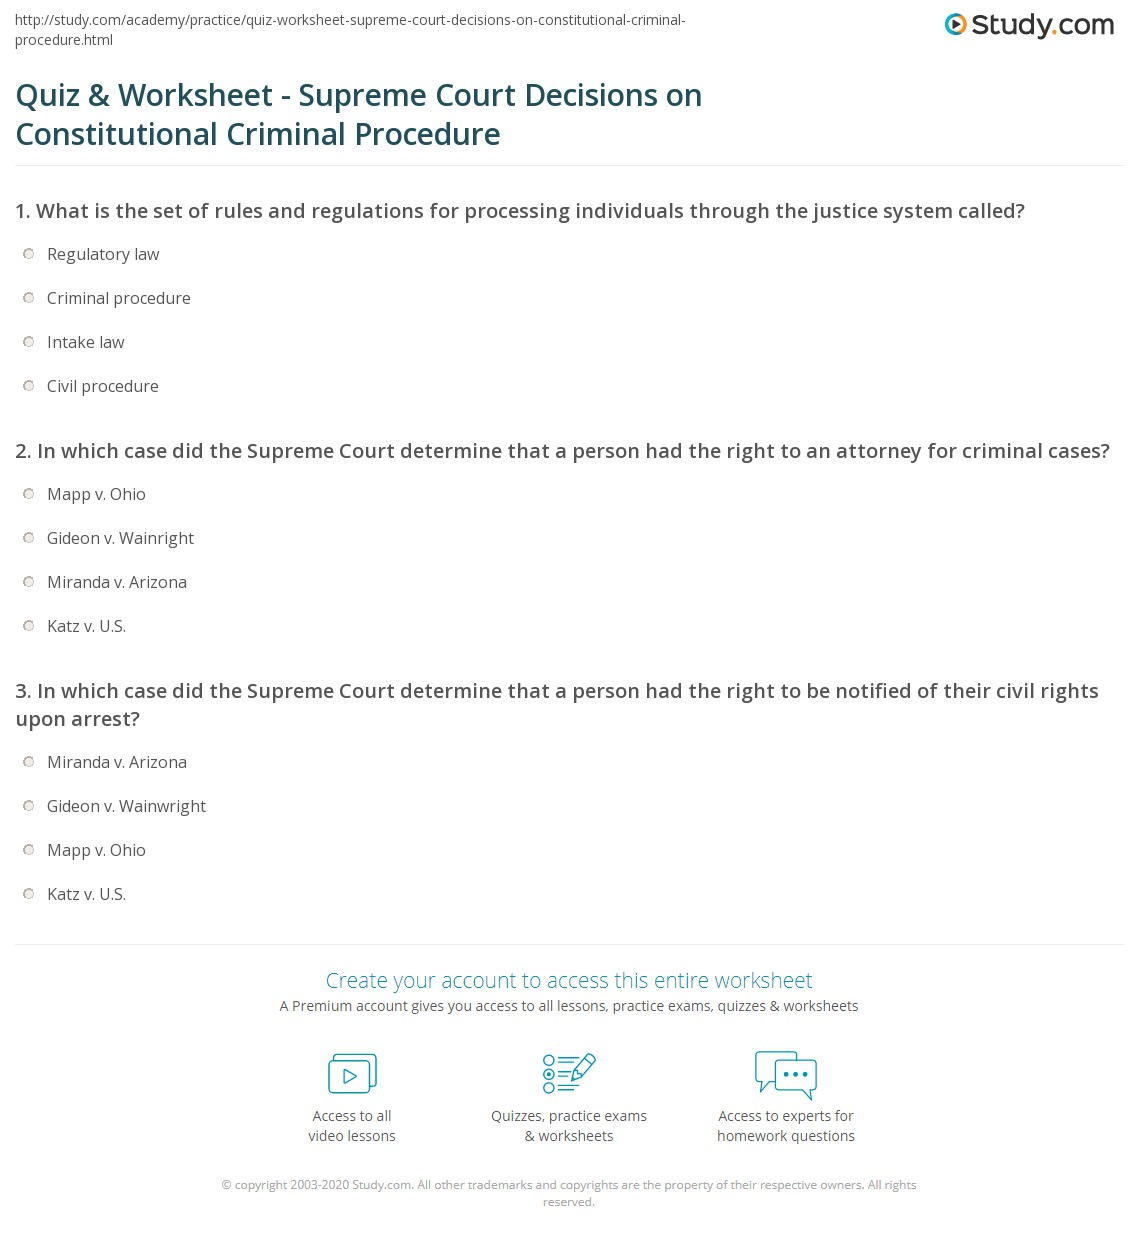 Quiz & Worksheet - Supreme Court Decisions on Constitutional